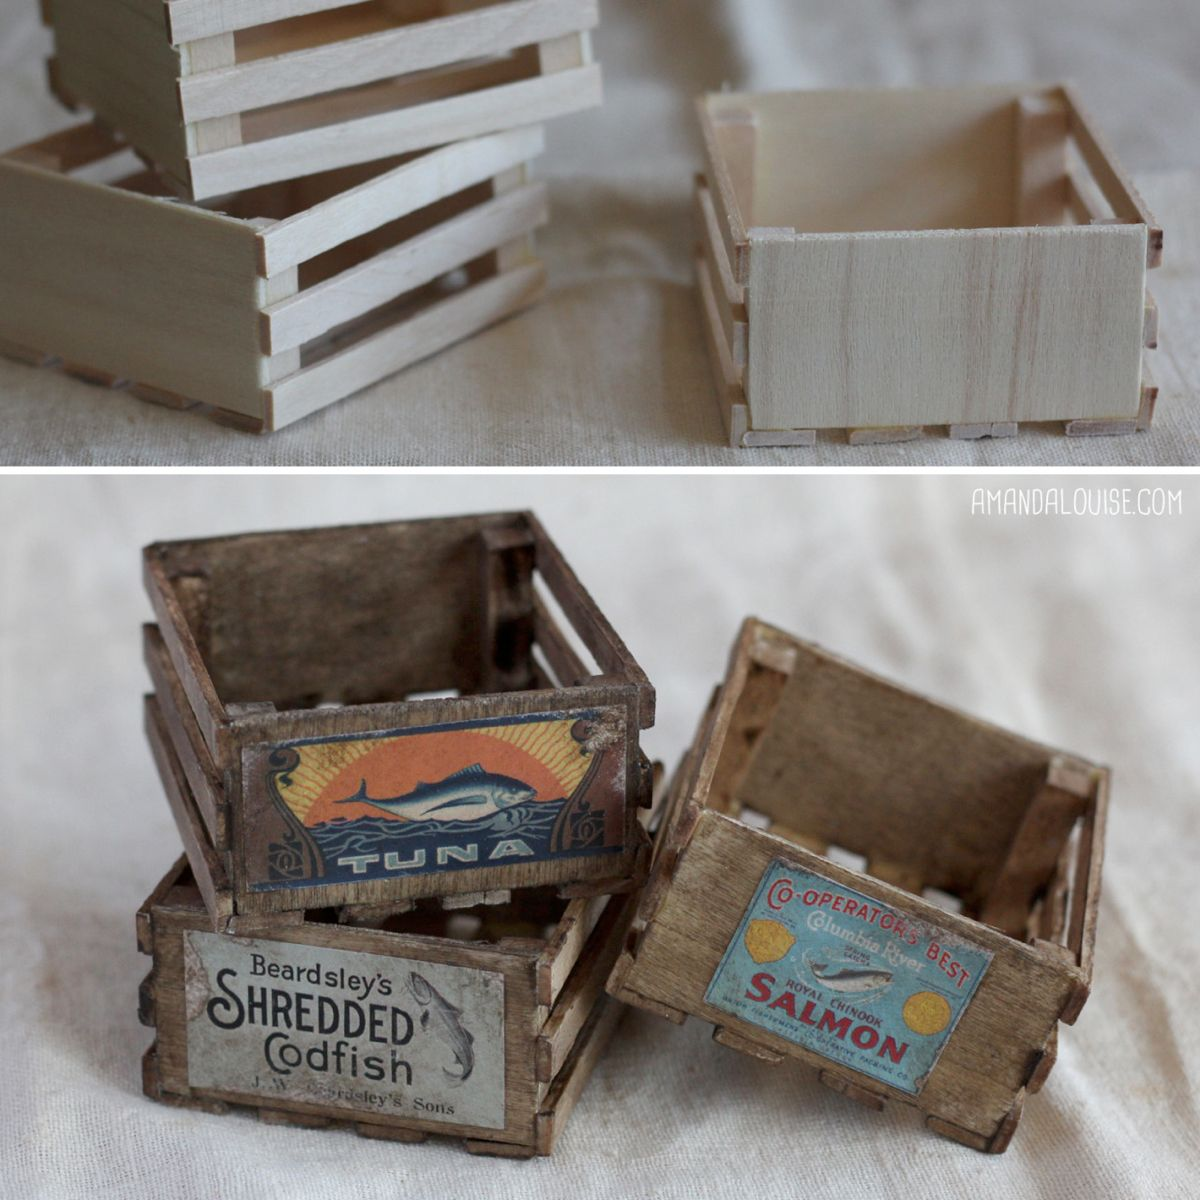 Amanda Louise Spayd's Dust Bunnies — Making miniature props is one of my favorite...